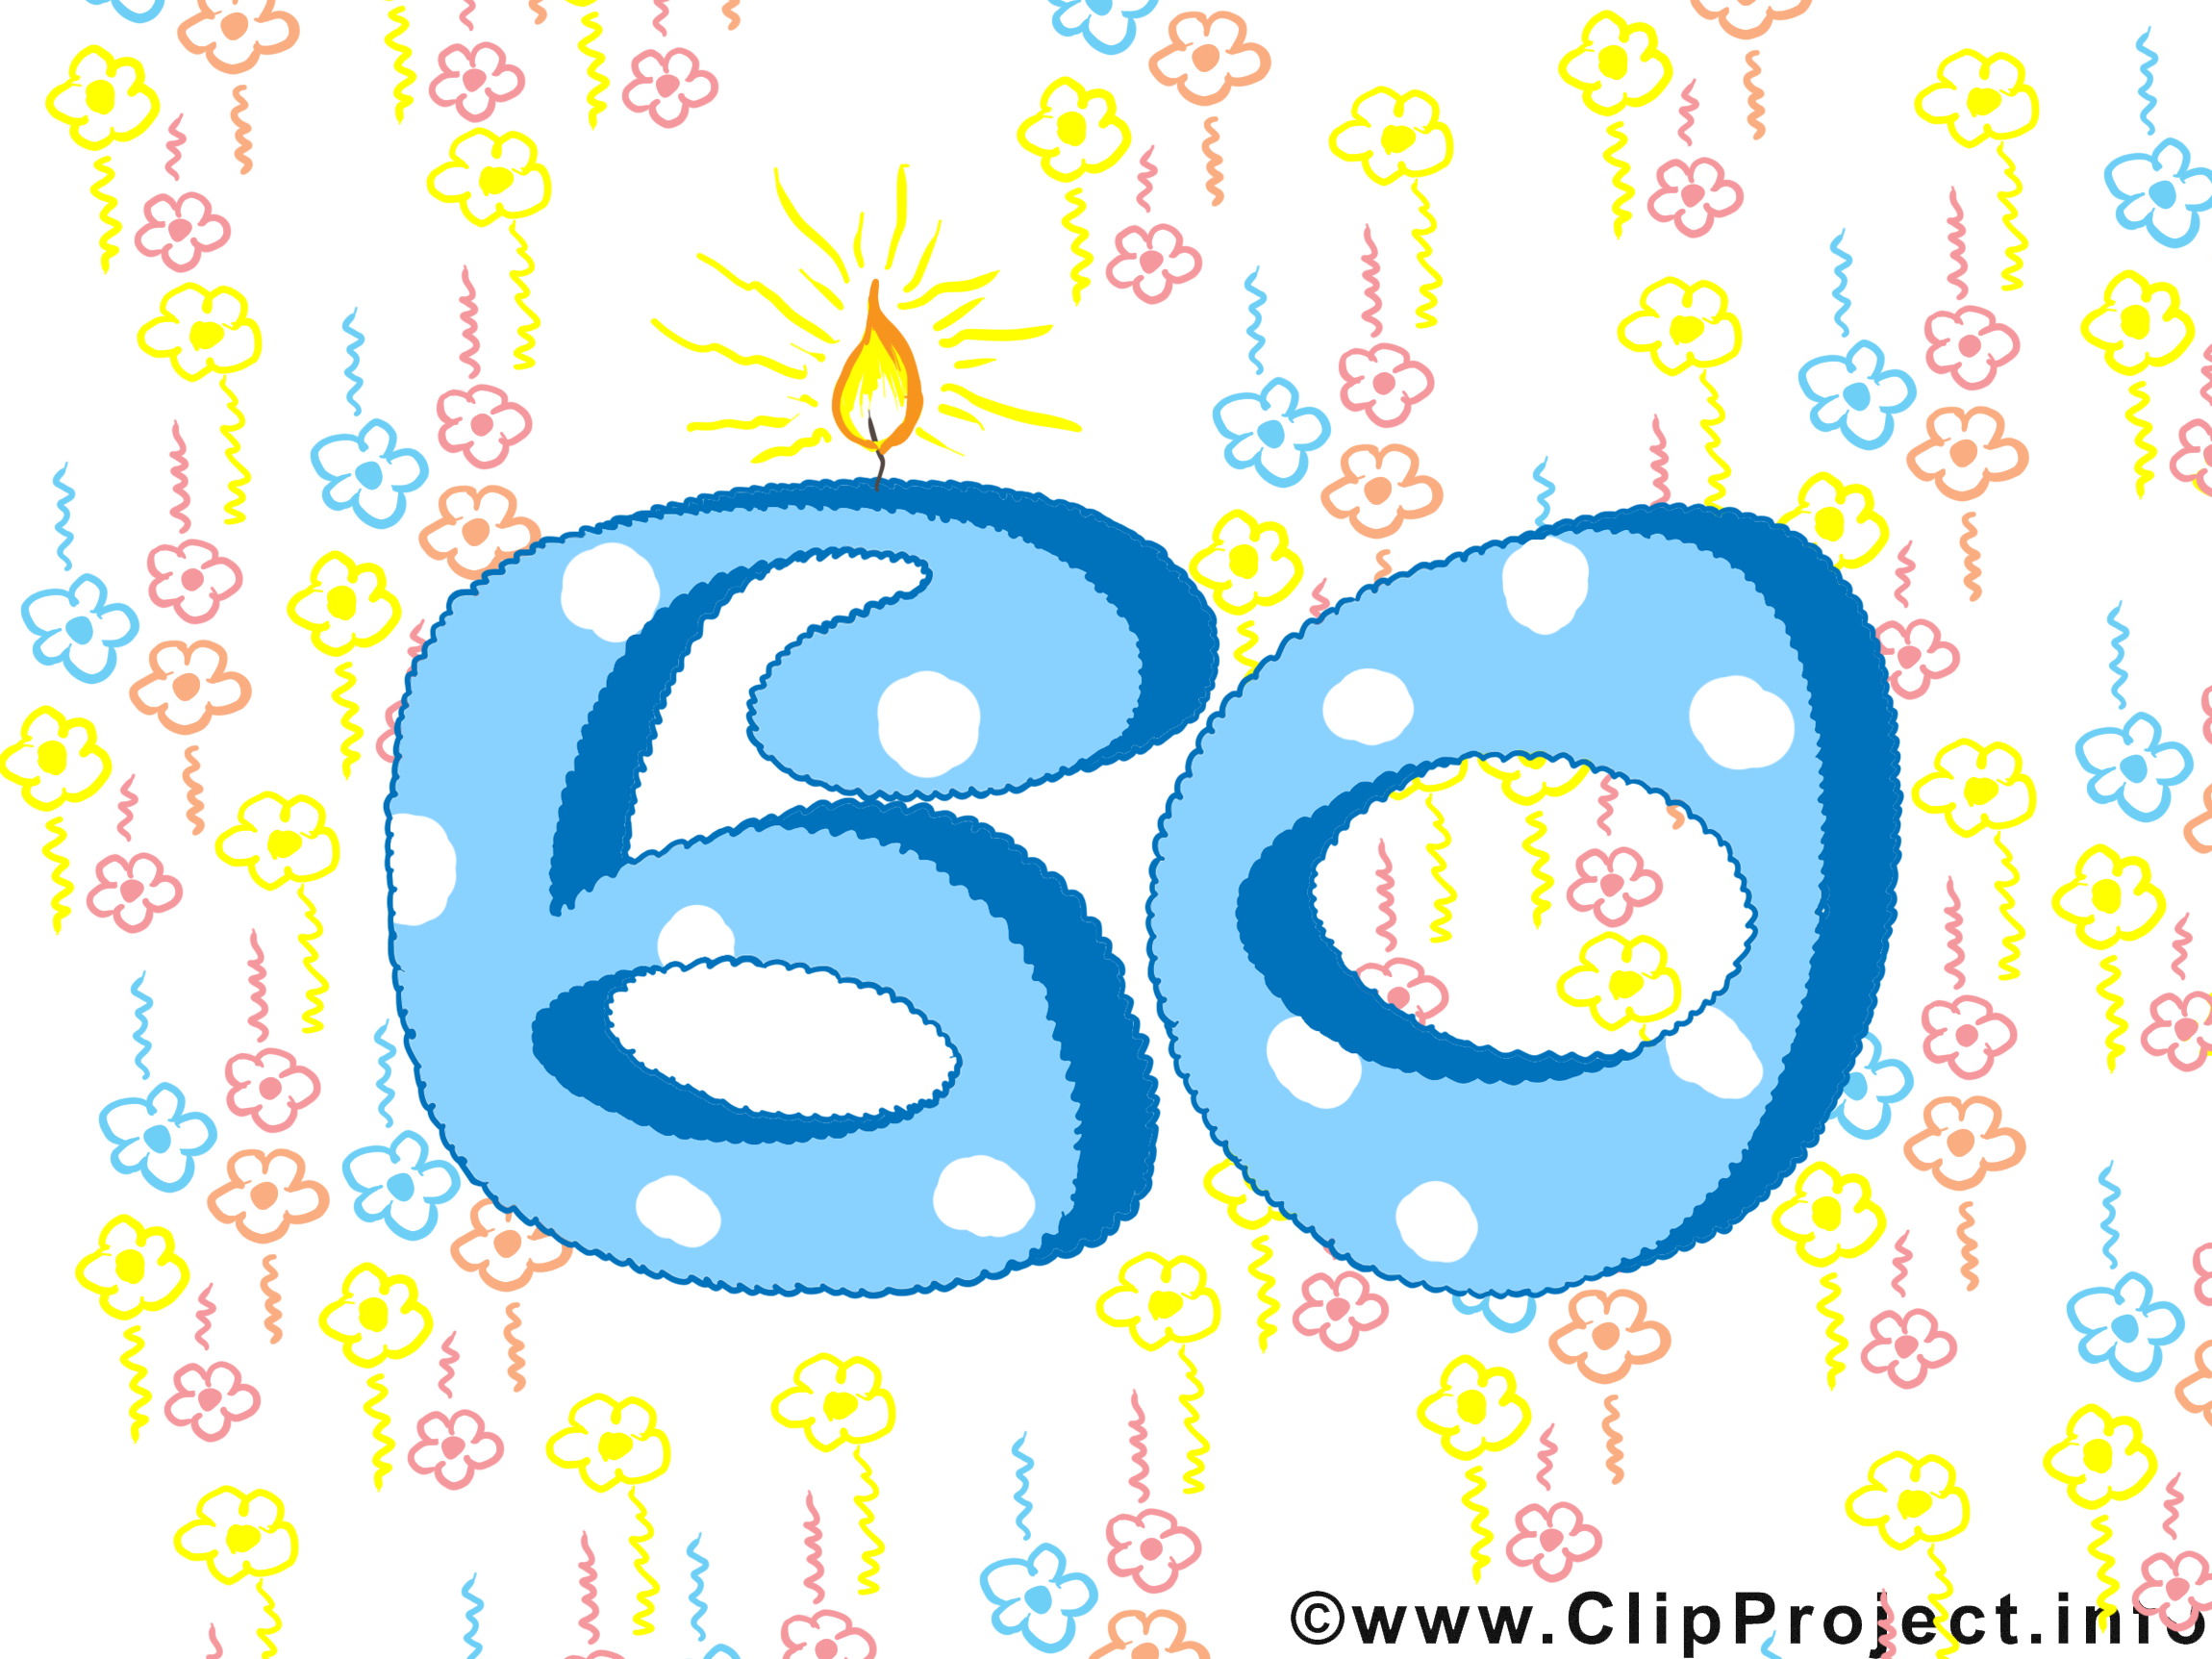 Clipart 60 geburtstag clipart Clipart 60 geburtstag 3 » Clipart Station clipart